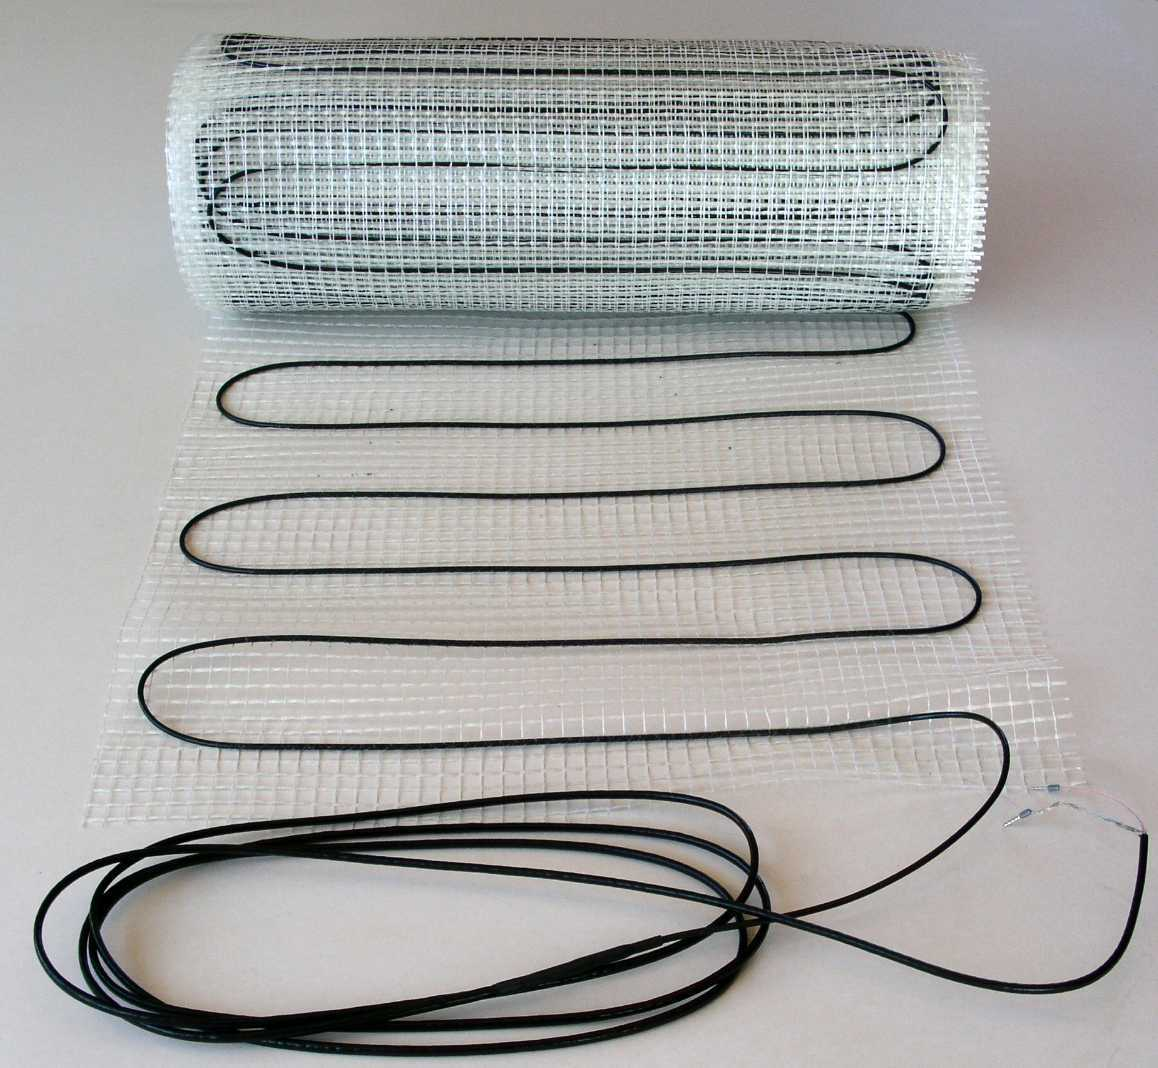 UnderFloor Heating mat